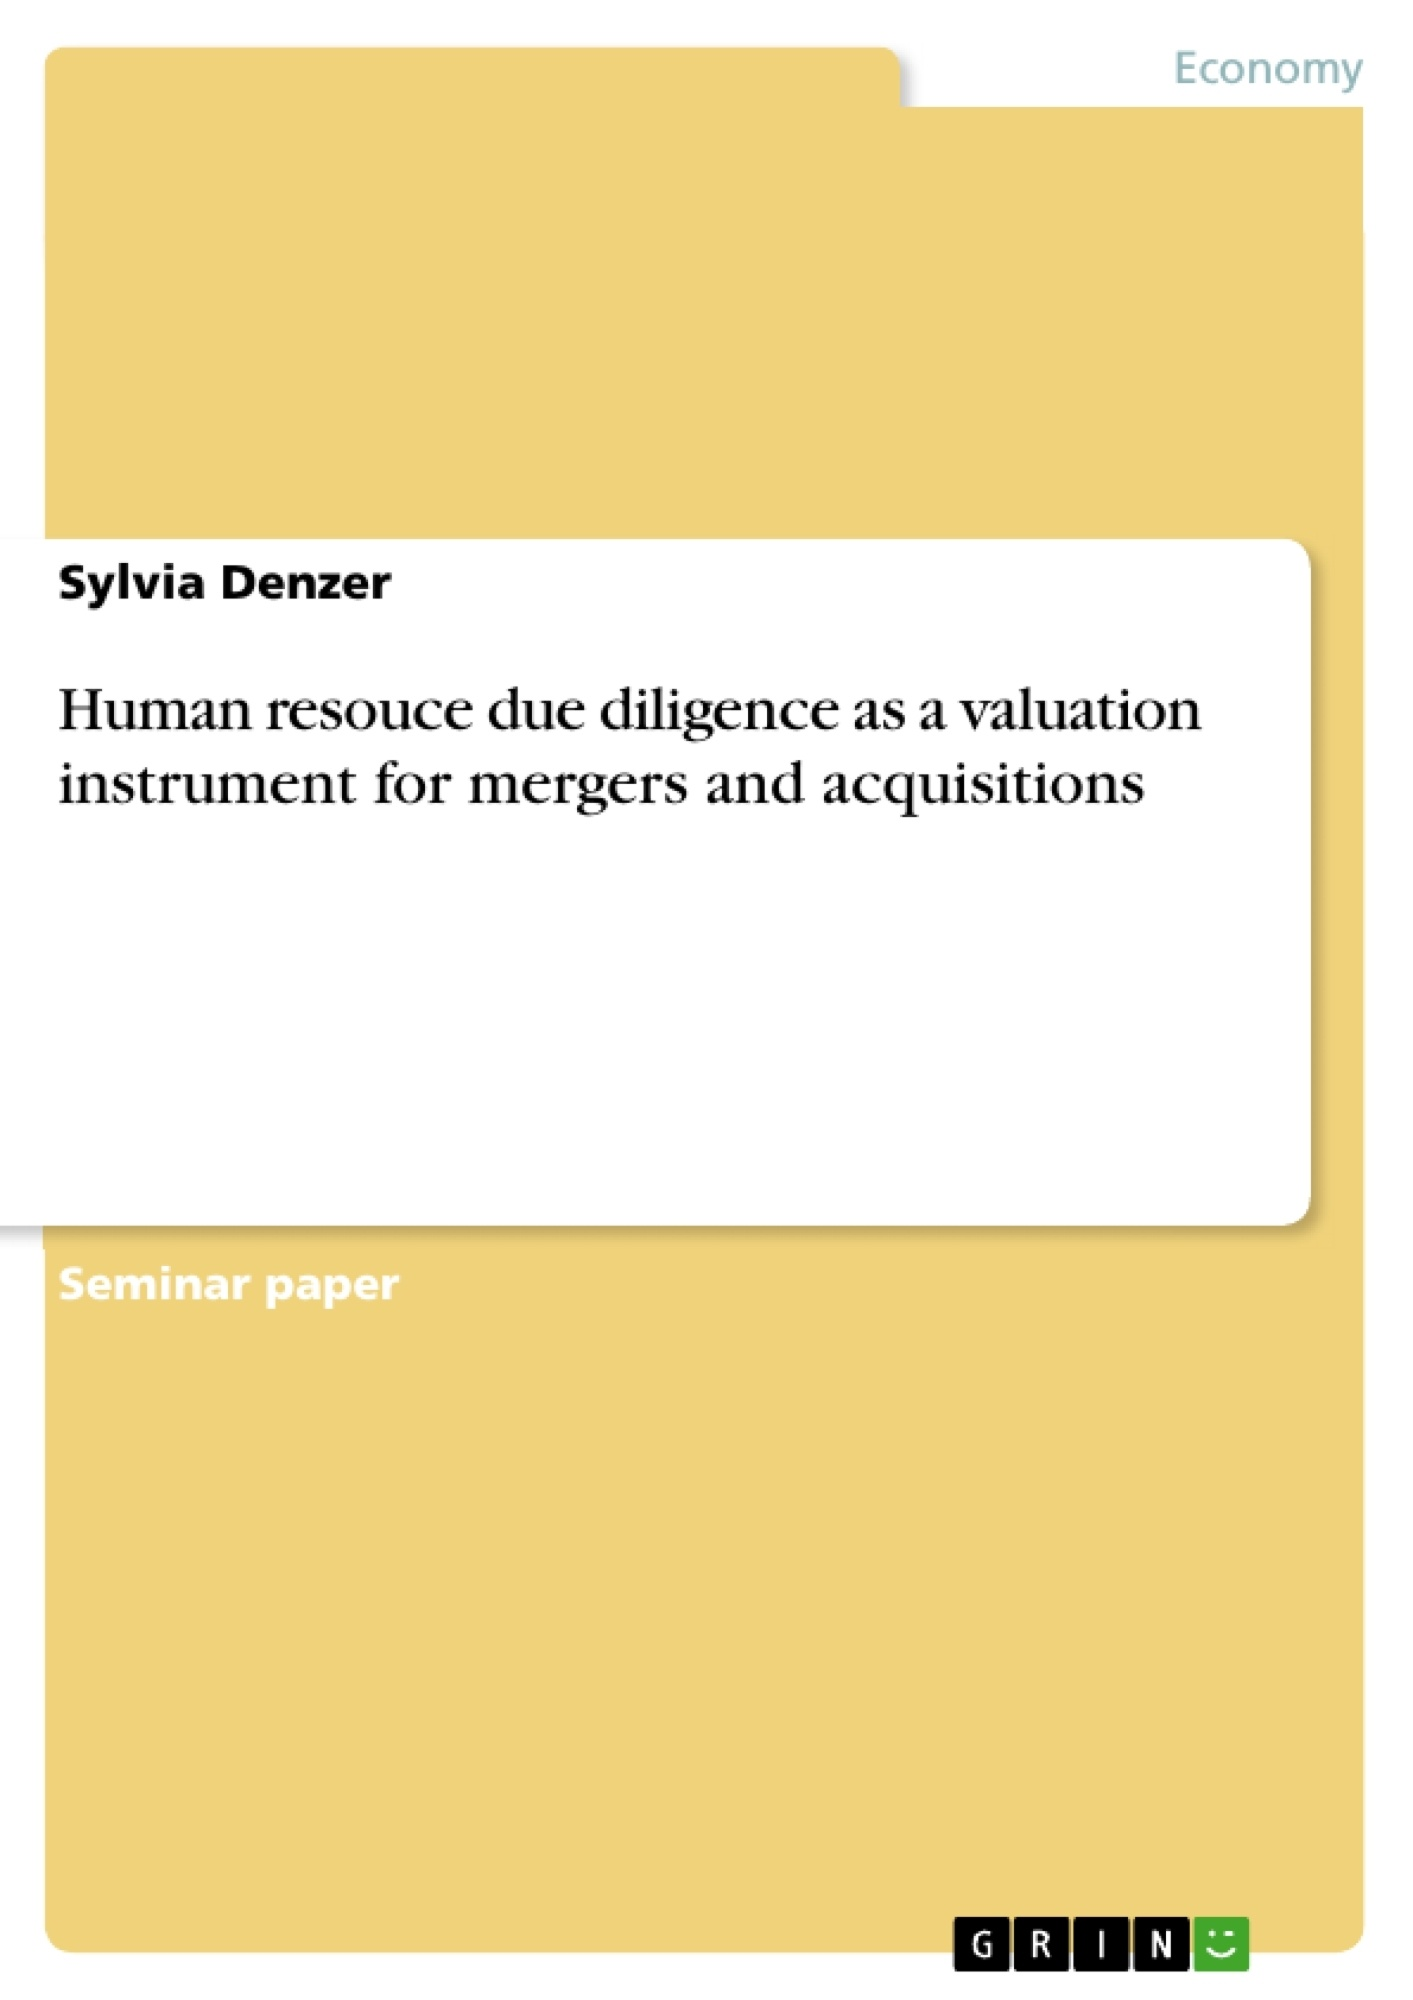 Title: Human resouce due diligence as a valuation instrument for mergers and acquisitions